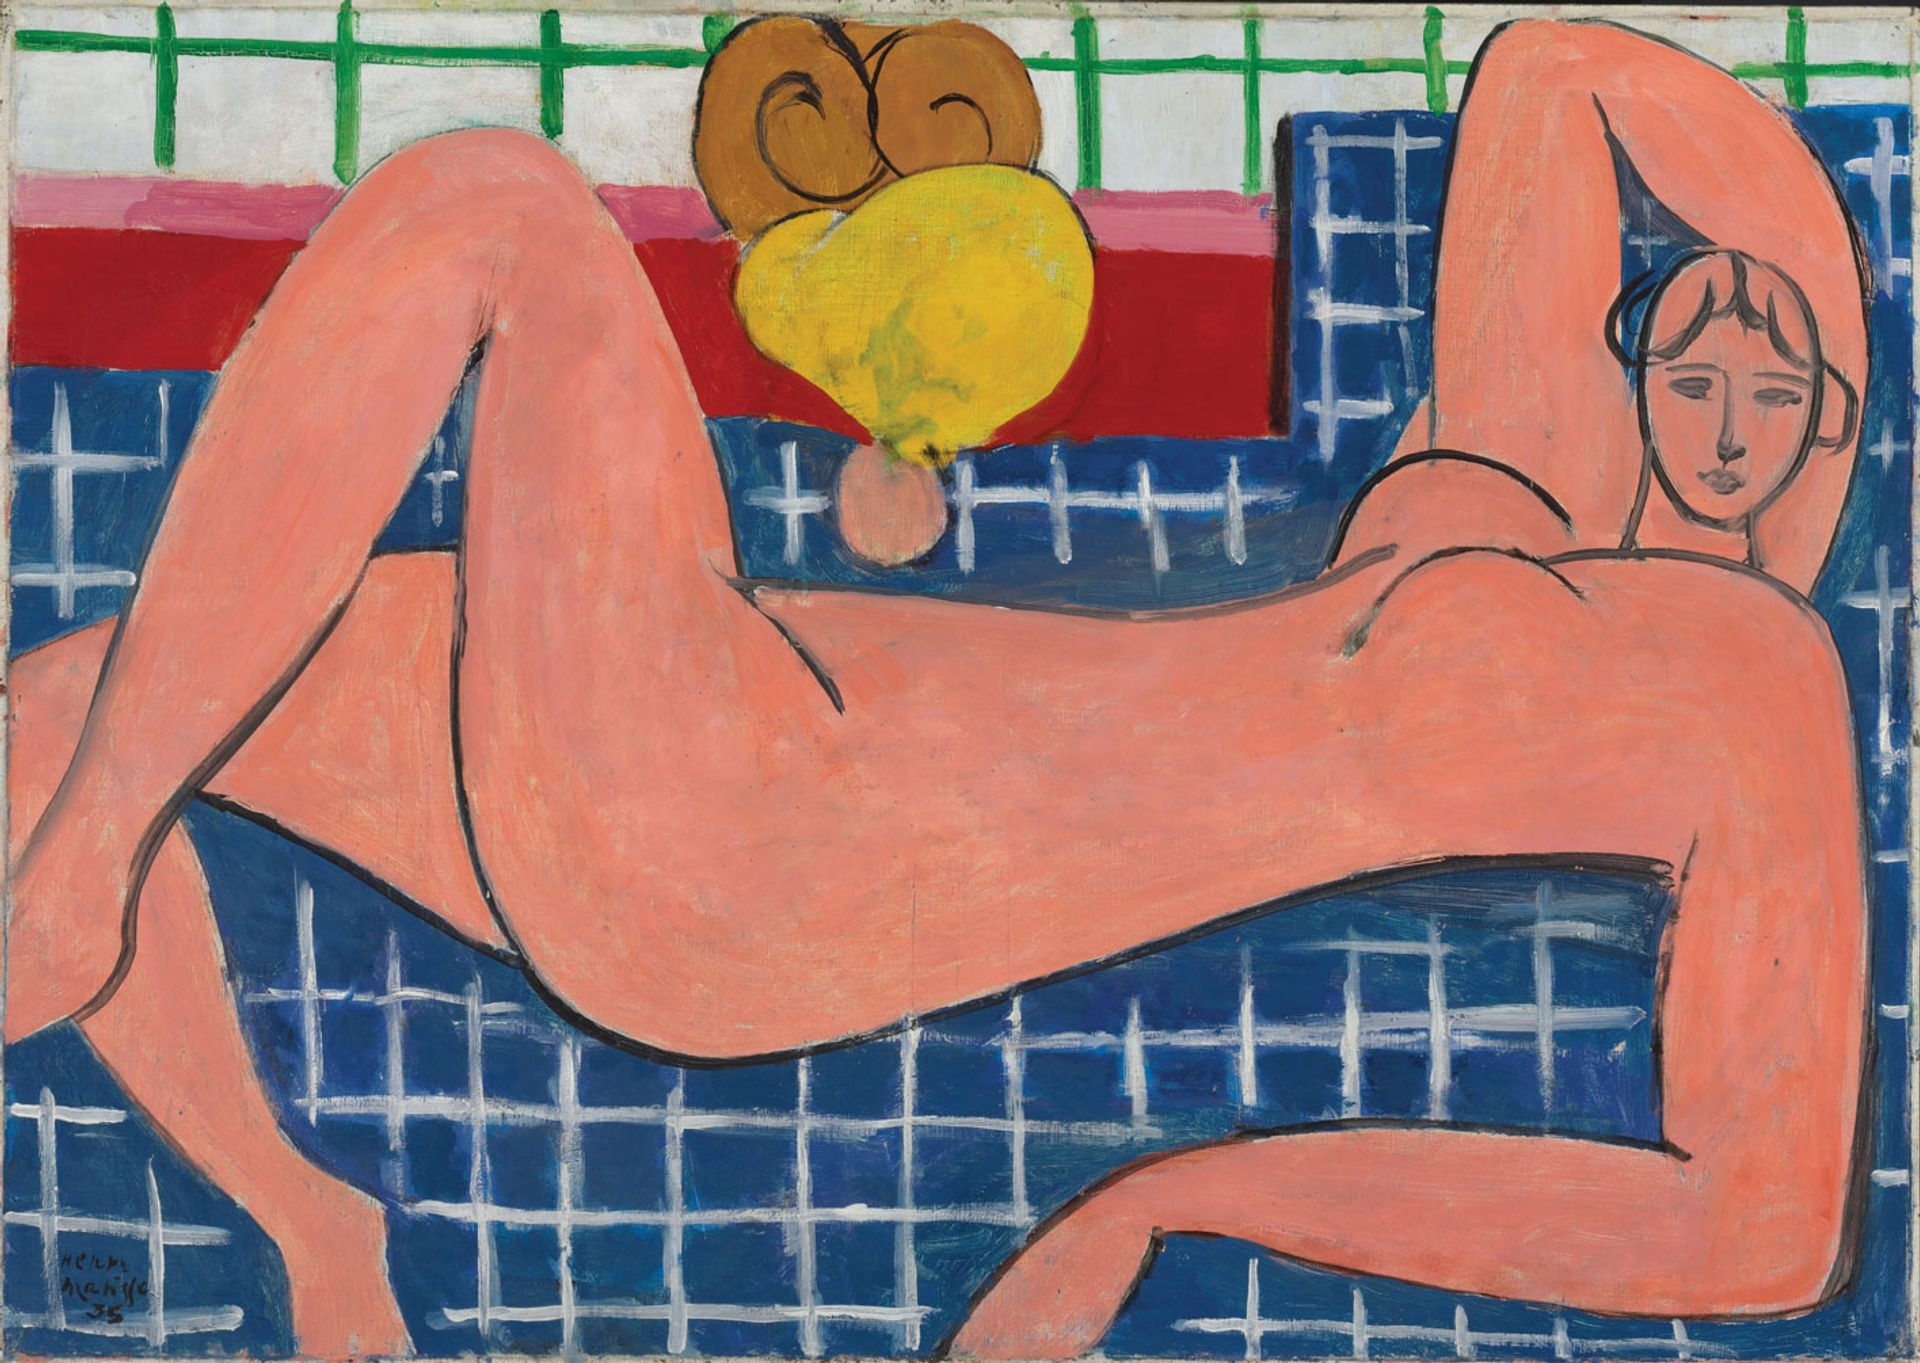 Henri Matisse's Large Reclining Nude (1935) © Succession H. Matisse, Paris/Artists Rights Society (ARS) New York